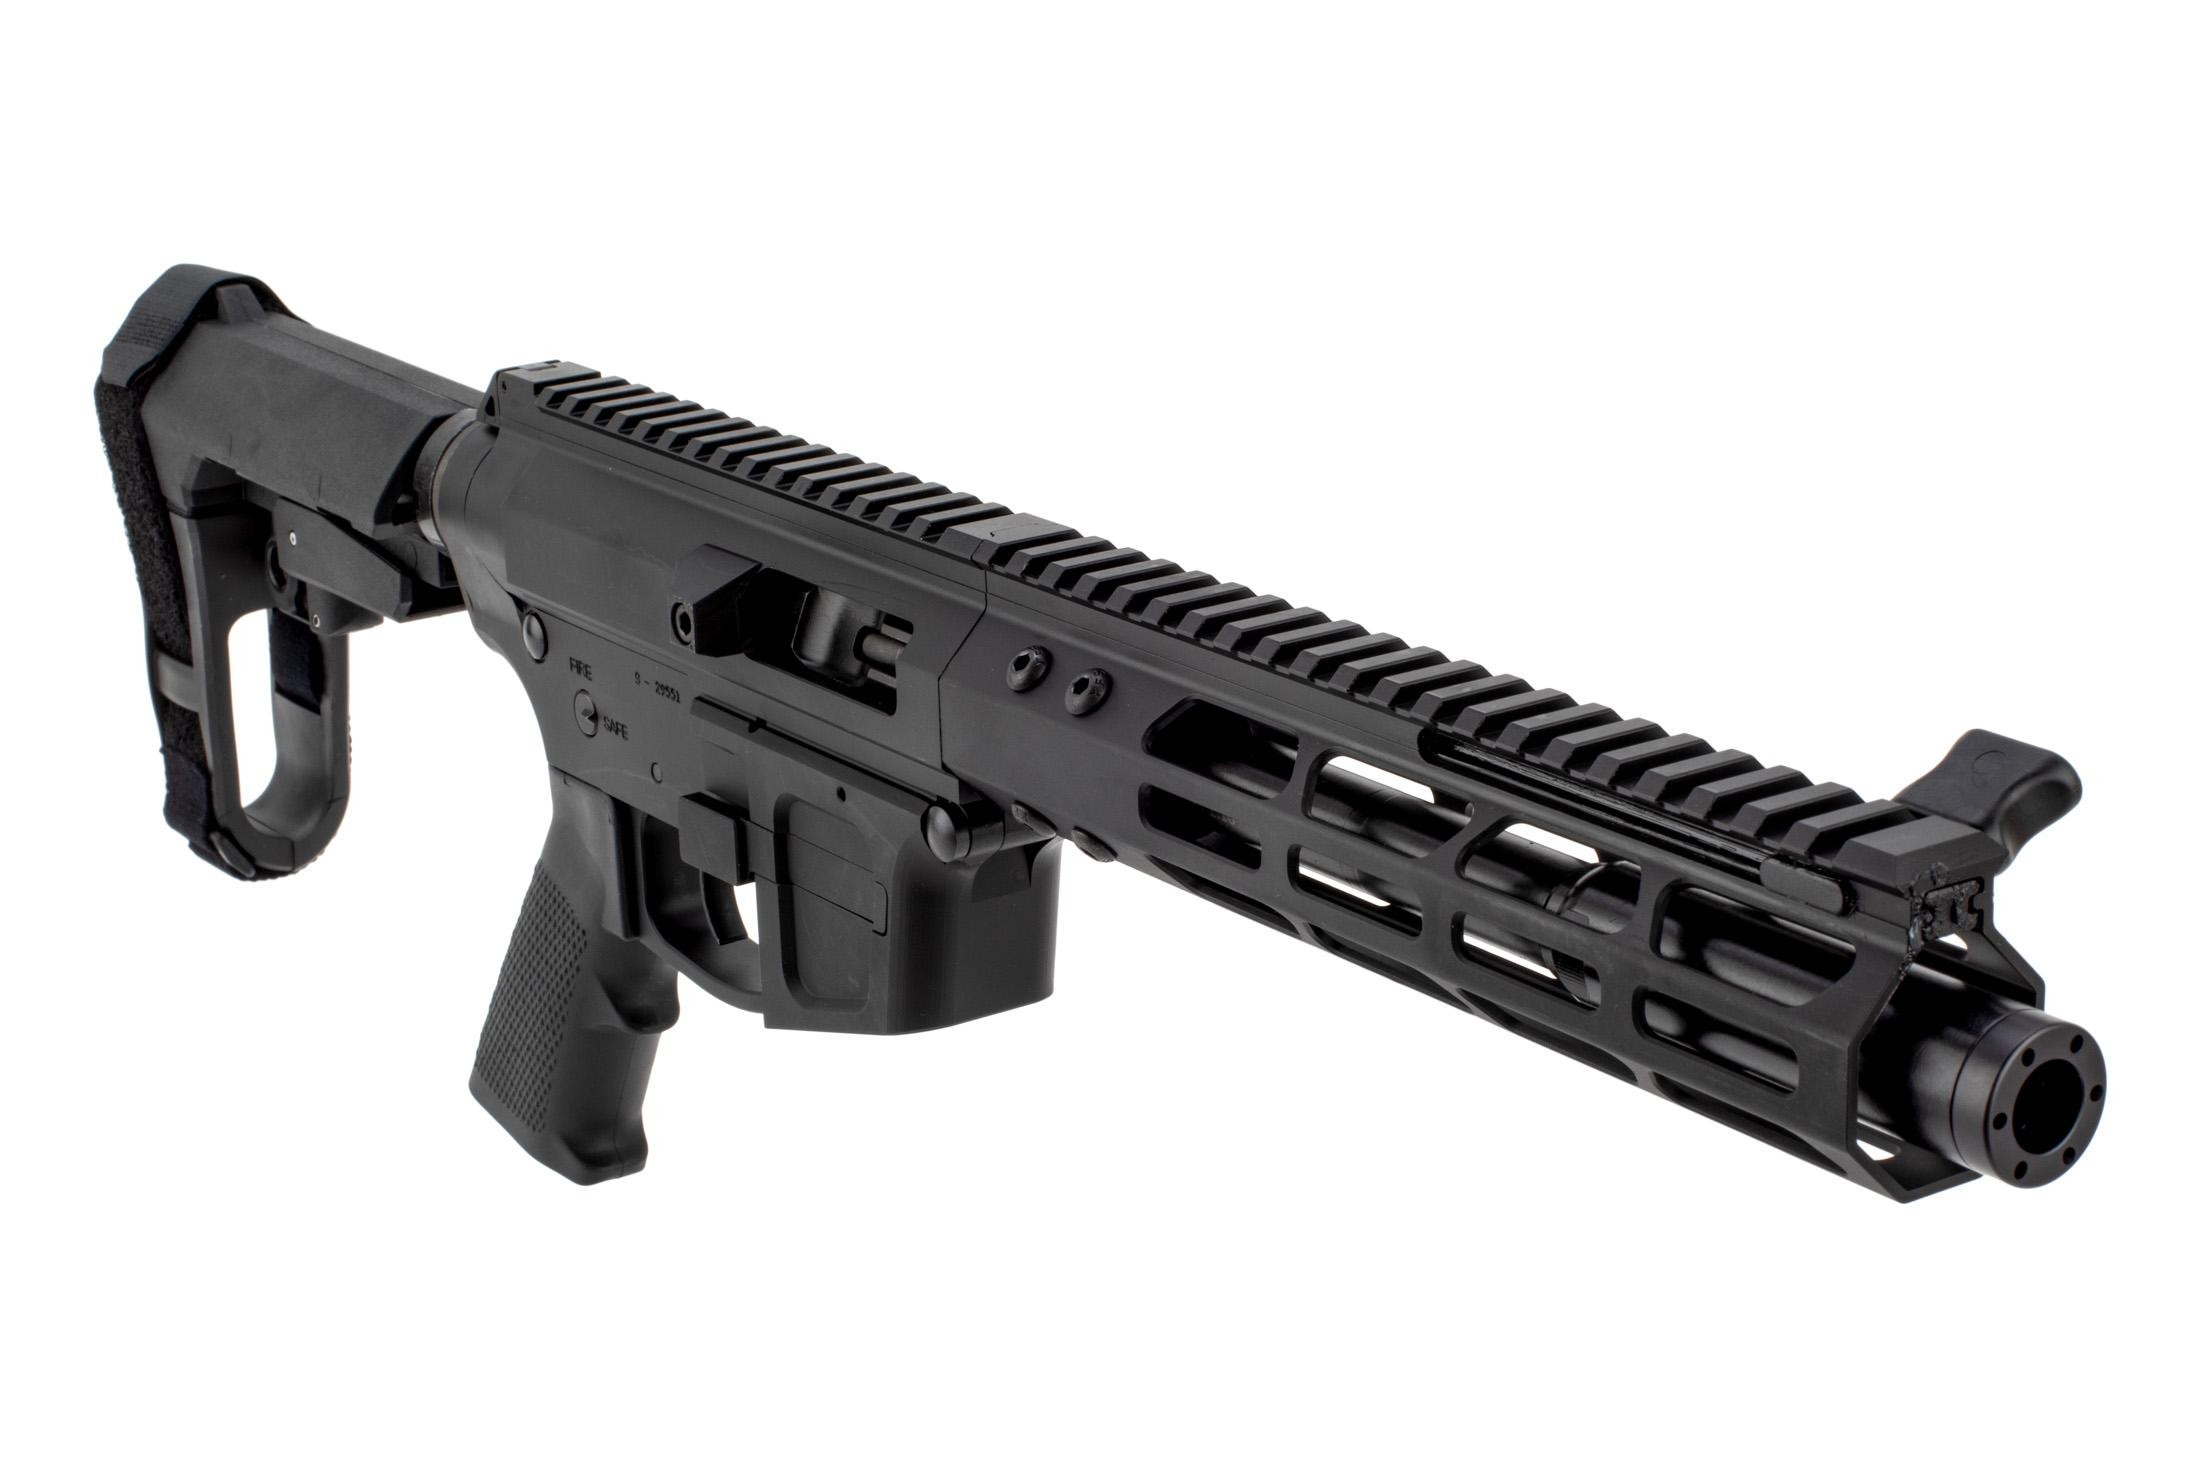 Foxtrot Mike Products glock-style 7 9mm side charger AR pistol is a PA exclusive with SBA3 pistol stabilizing brace